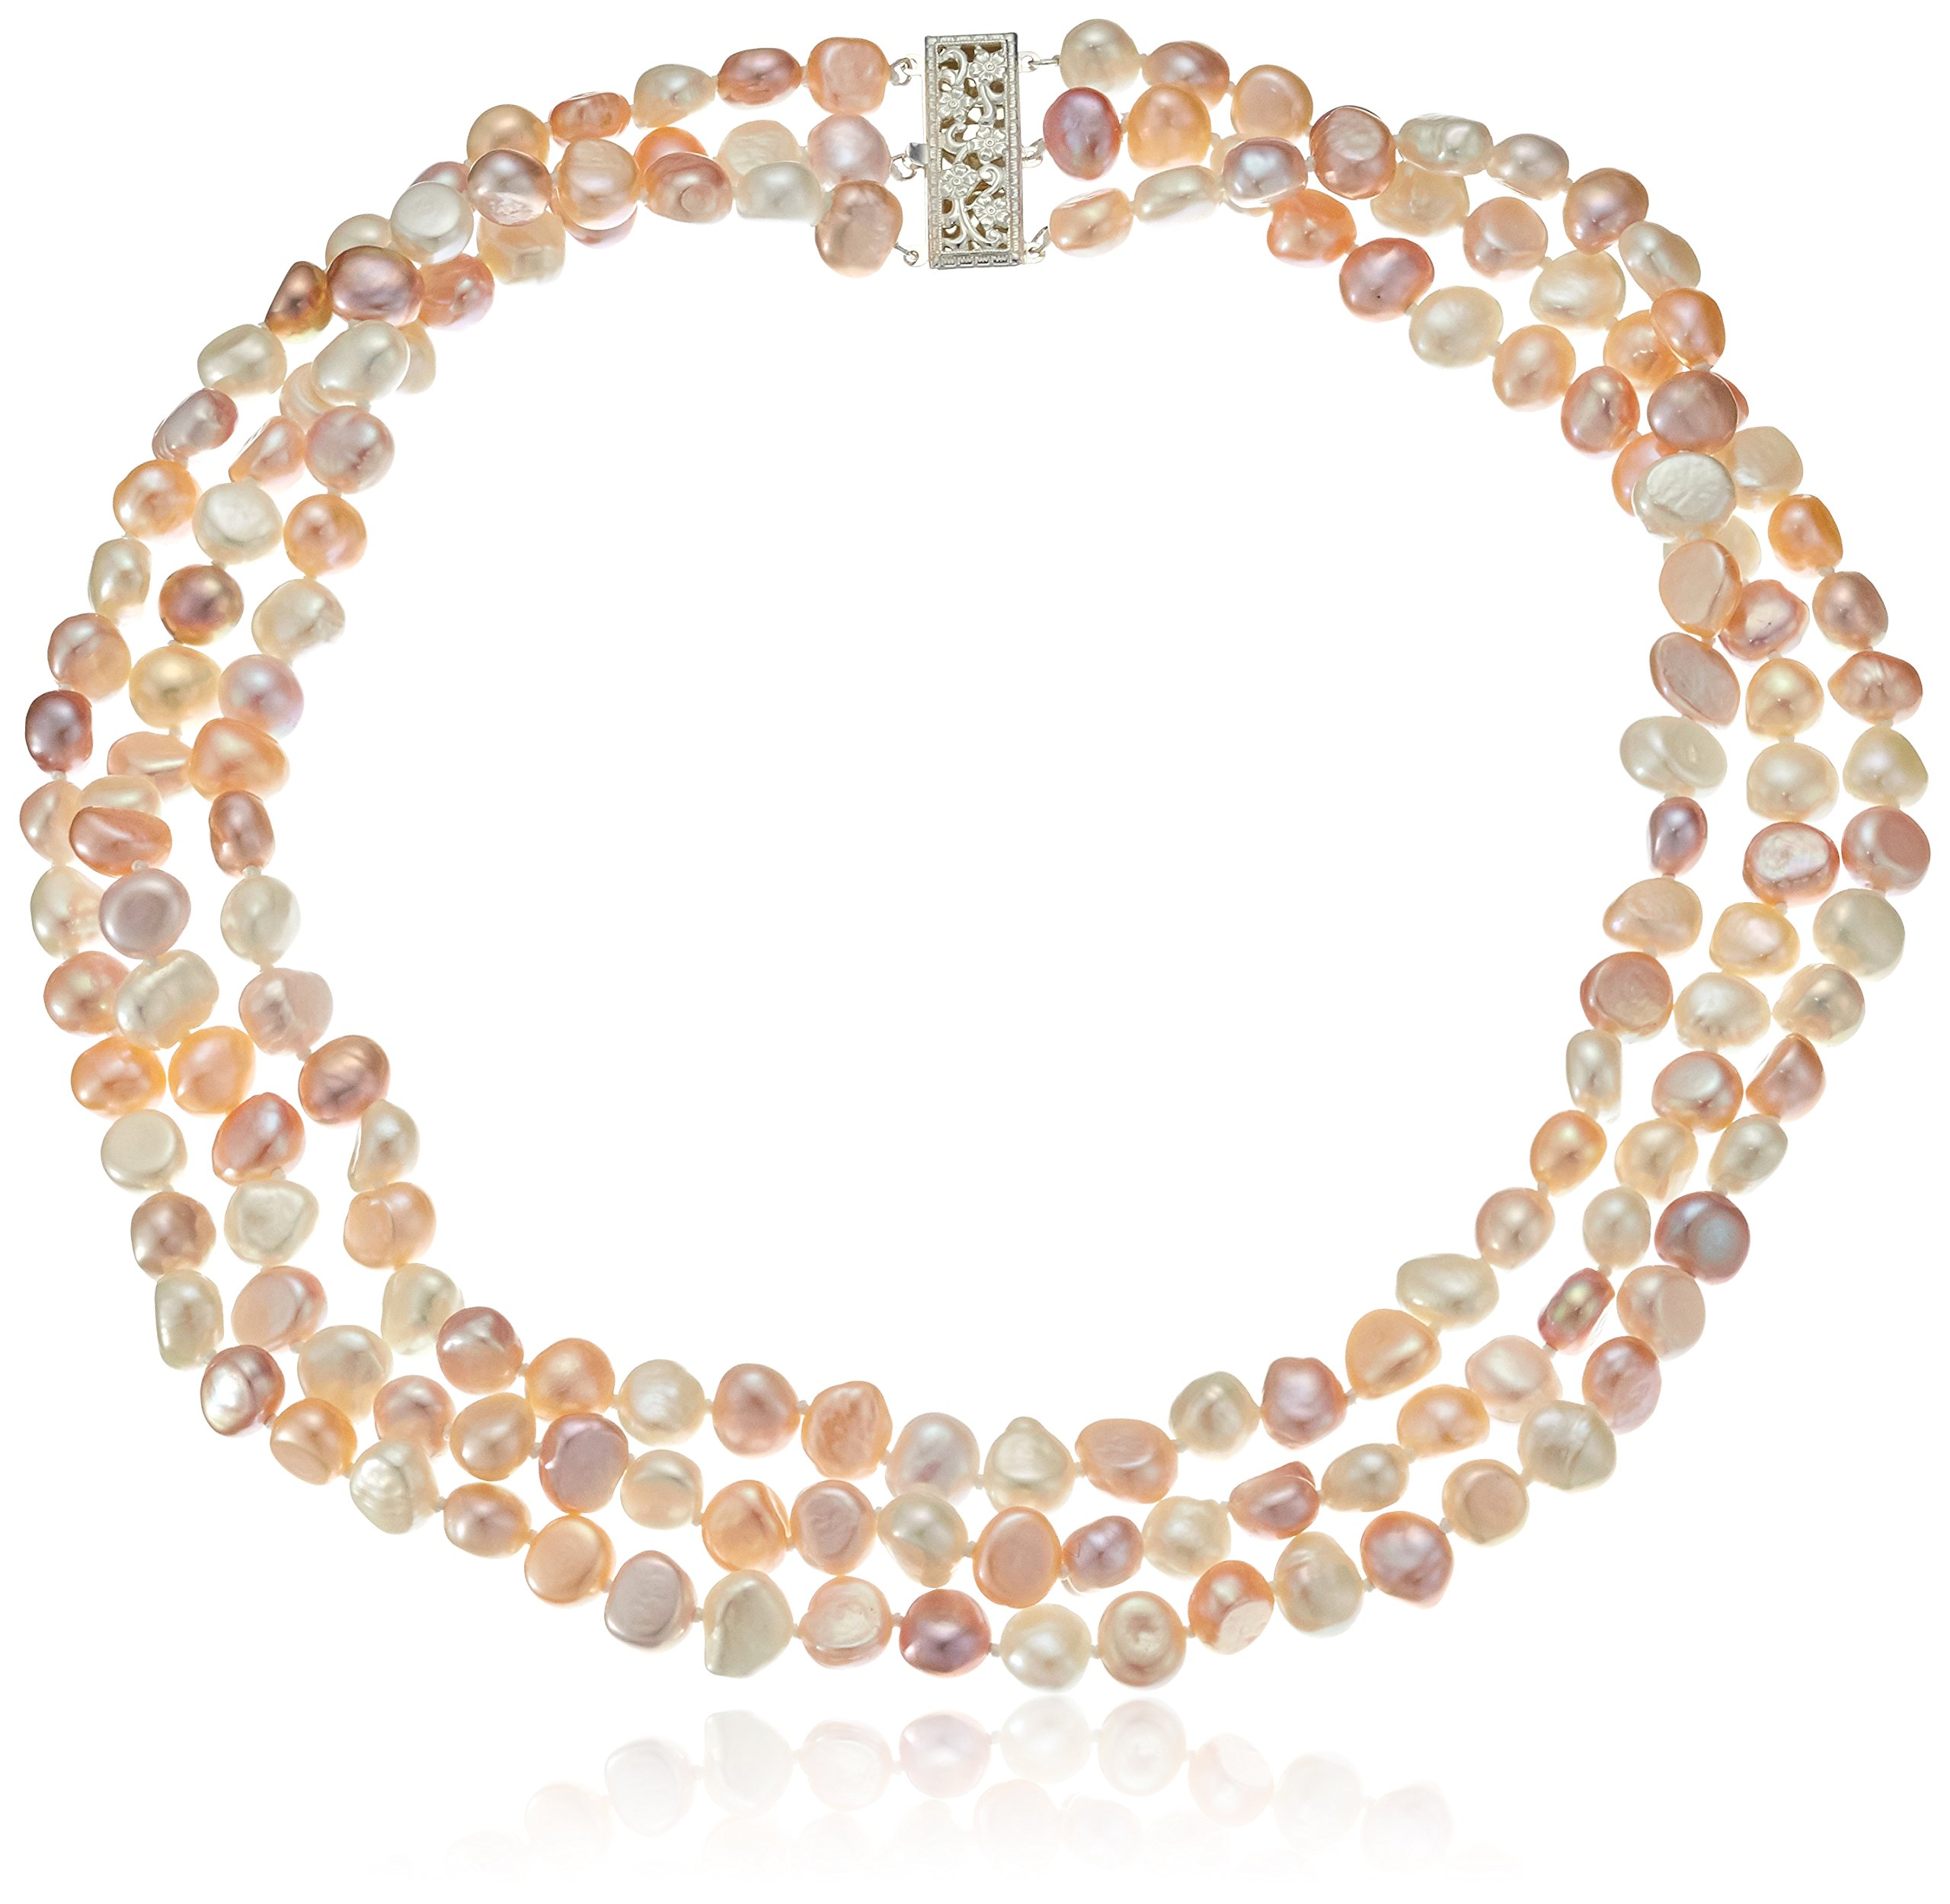 Sterling Silver Three Row 7.5-8mm Multicolor Pink and White Baroque Cultured Freshwater Pearl Strand Necklace, 18''